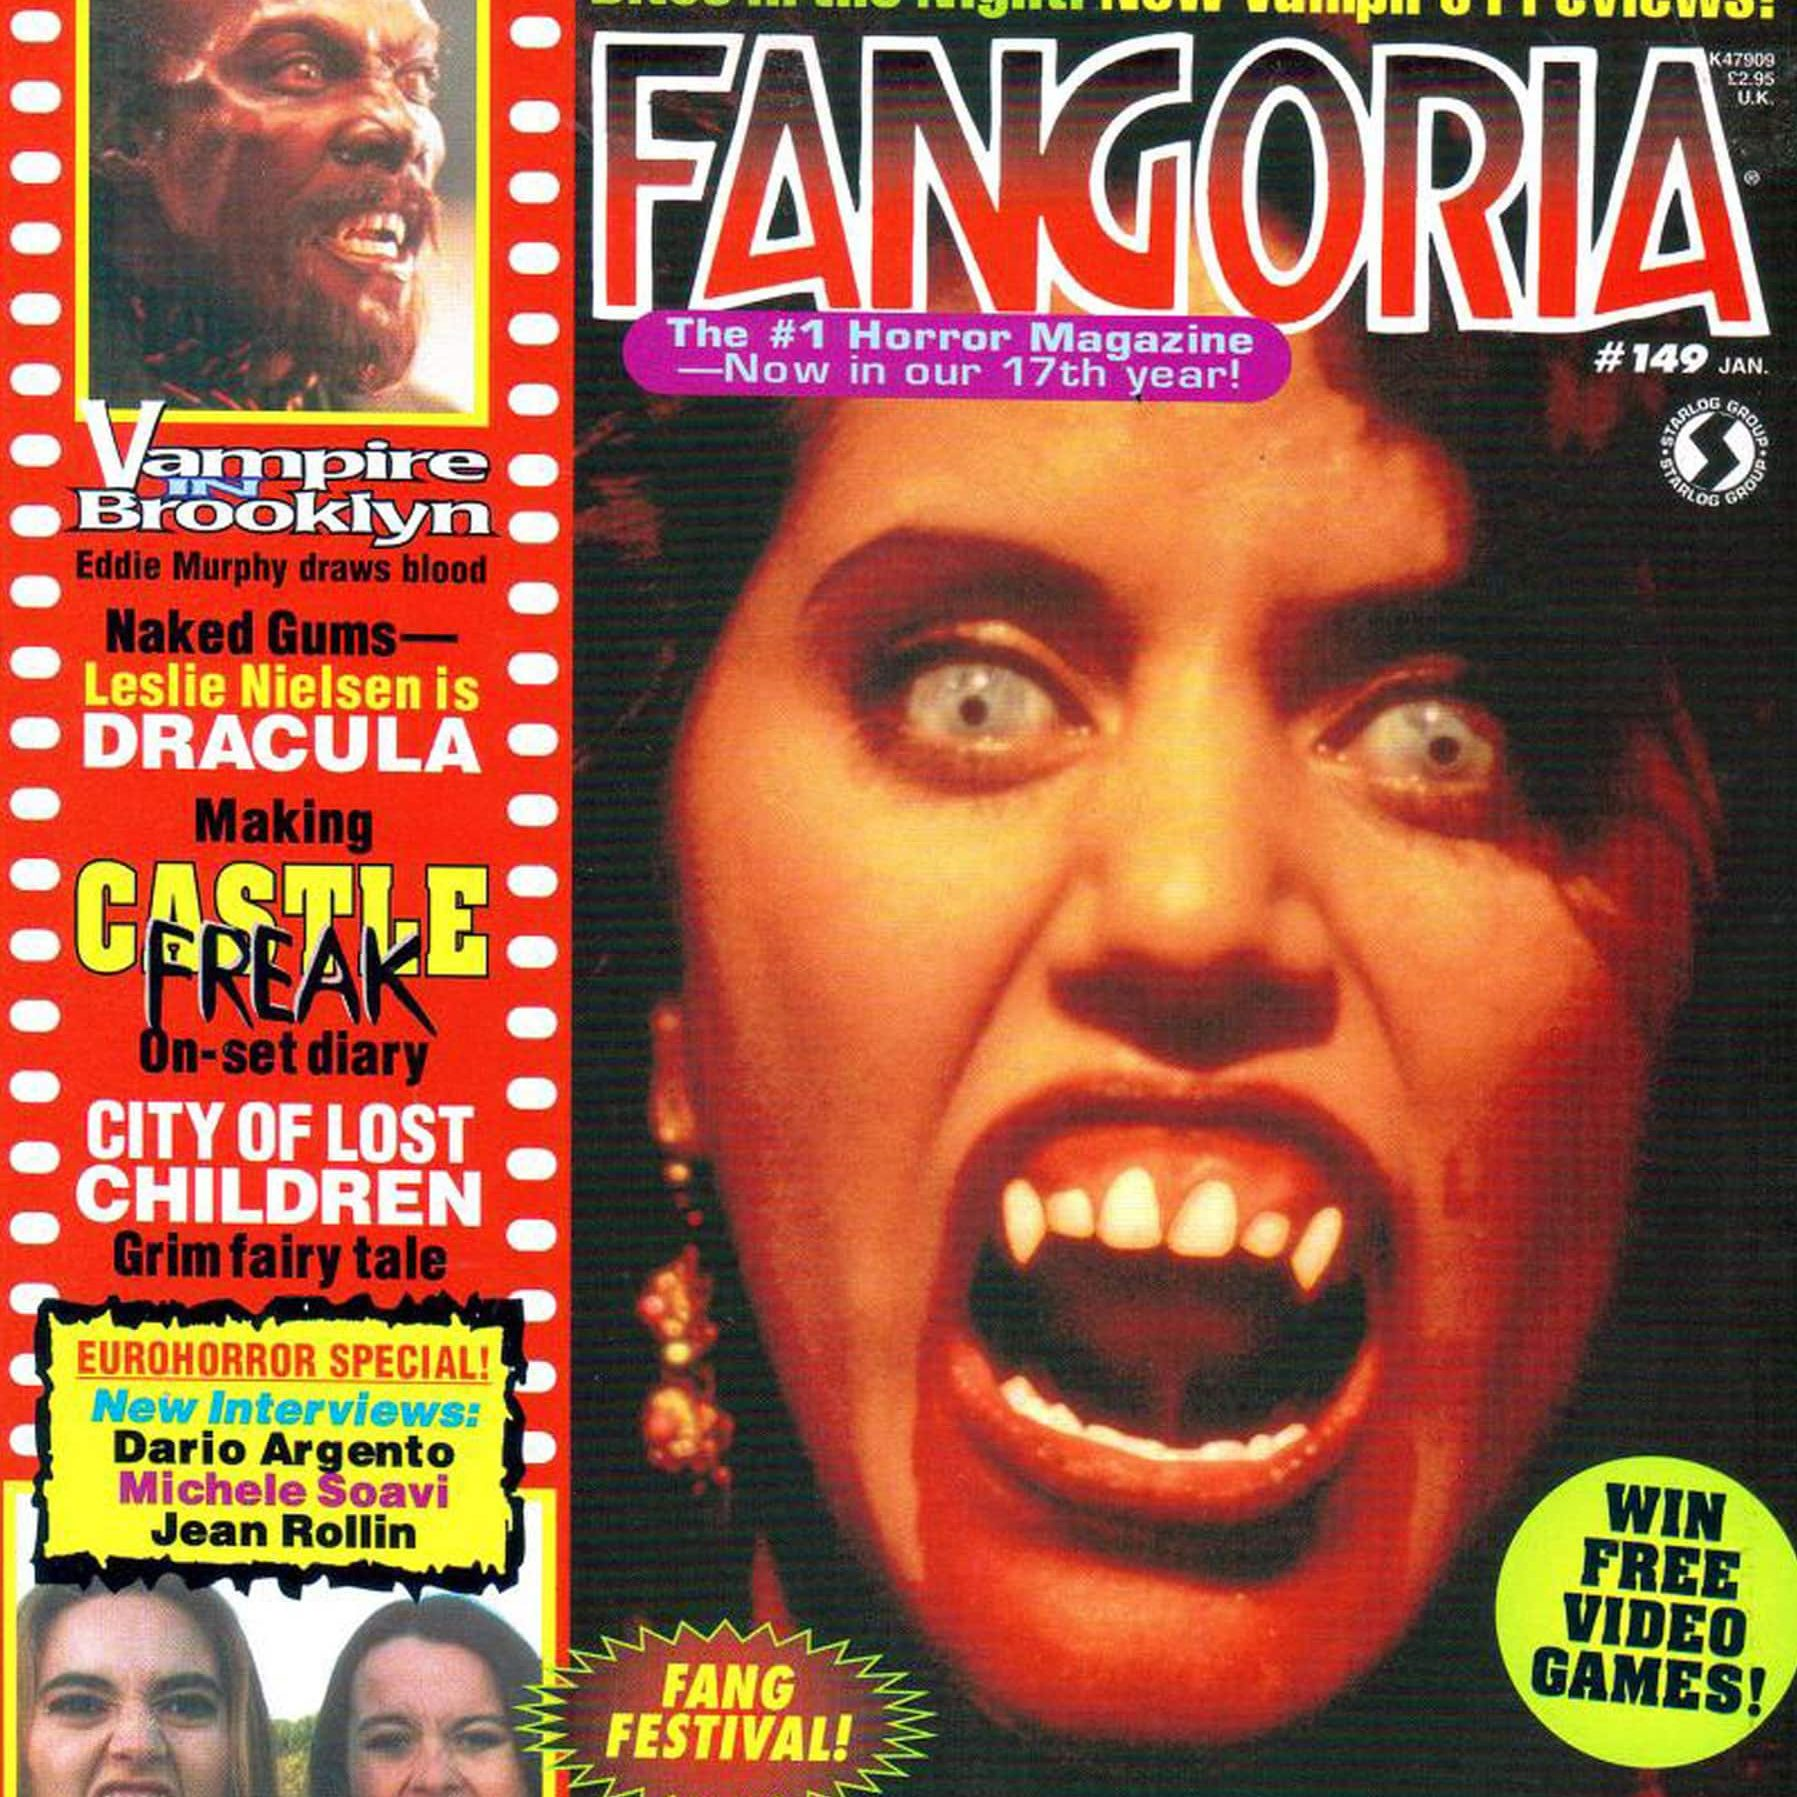 fangoria e1571835302276 Bruce Campbell's Plastic Surgery and 19 Other Things You Didn't Know About Army of Darkness